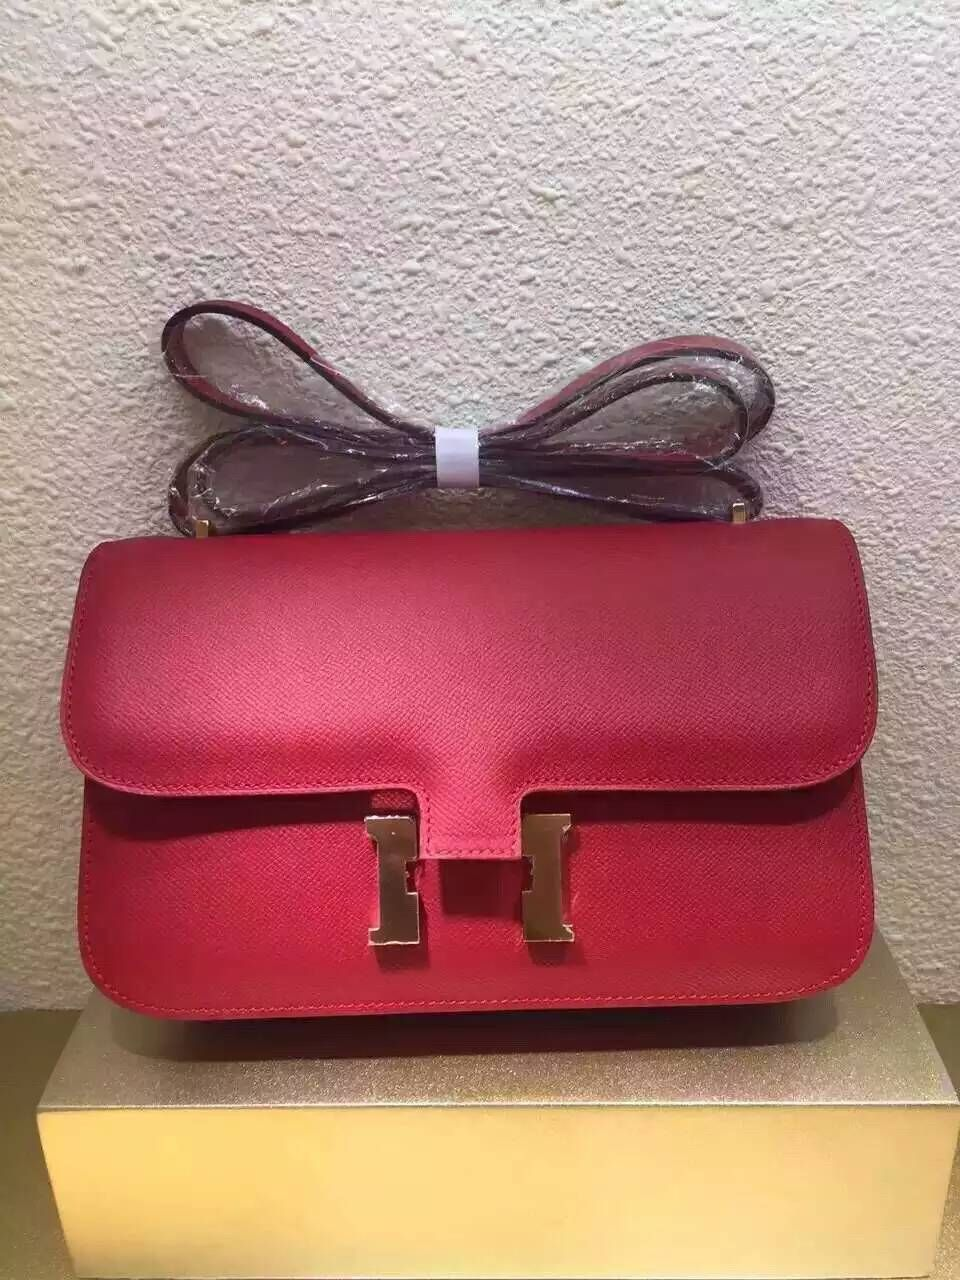 Limited Edition!2016 Hermes Little Bags Outlet With Free Shipping-Hermes  Classic Constance Shoulder Bag 26CM in Red Veau Epsom 28c3a886916eb